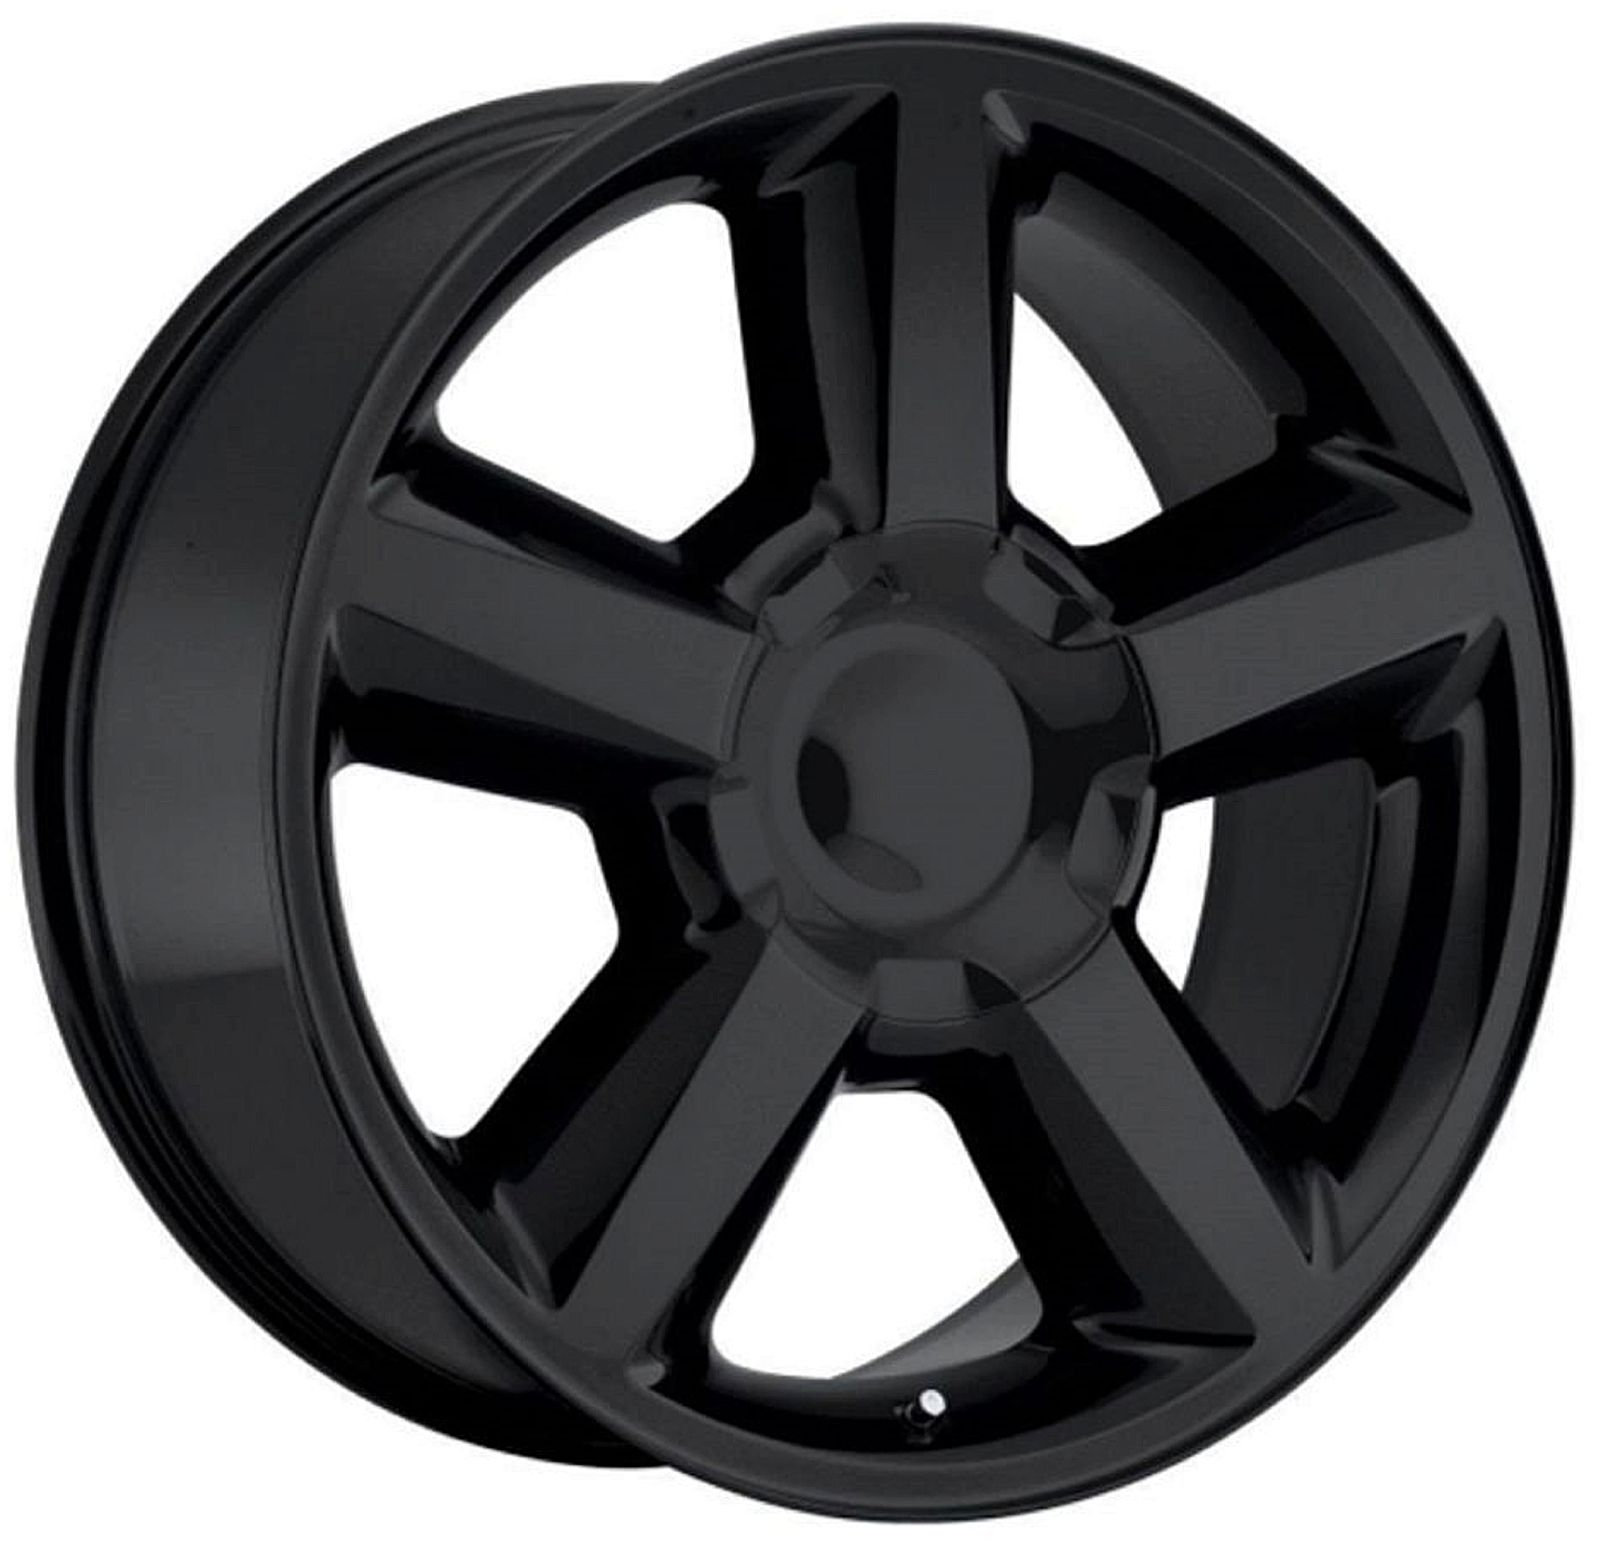 50 Inch Rims : Inch oe performance gb chevy tahoe ltz wheels gloss